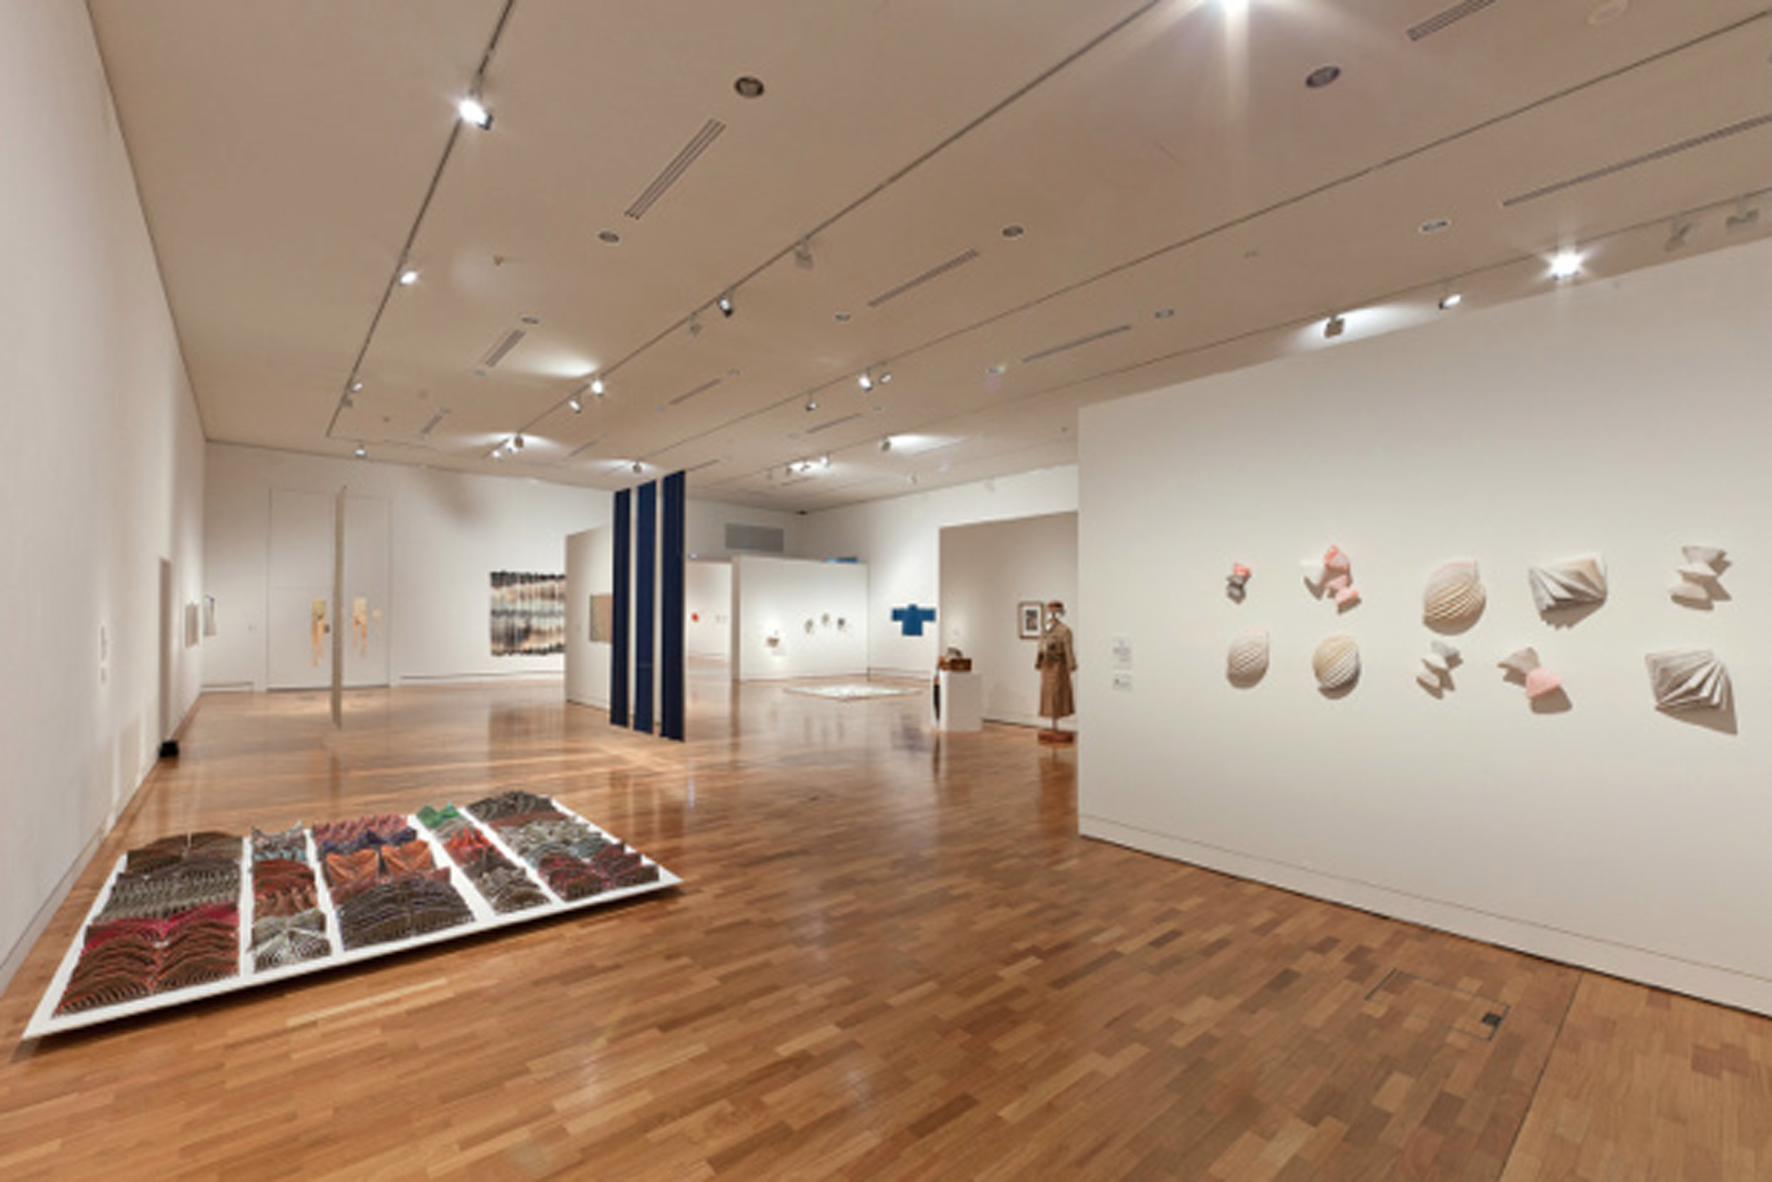 undefined objects,  2014, hand-printed linen & cotton, sewing thread, machine and hand sewn, dimensions variable, as installed in  Group Exchange: 2nd Tamworth Textile Triennial.